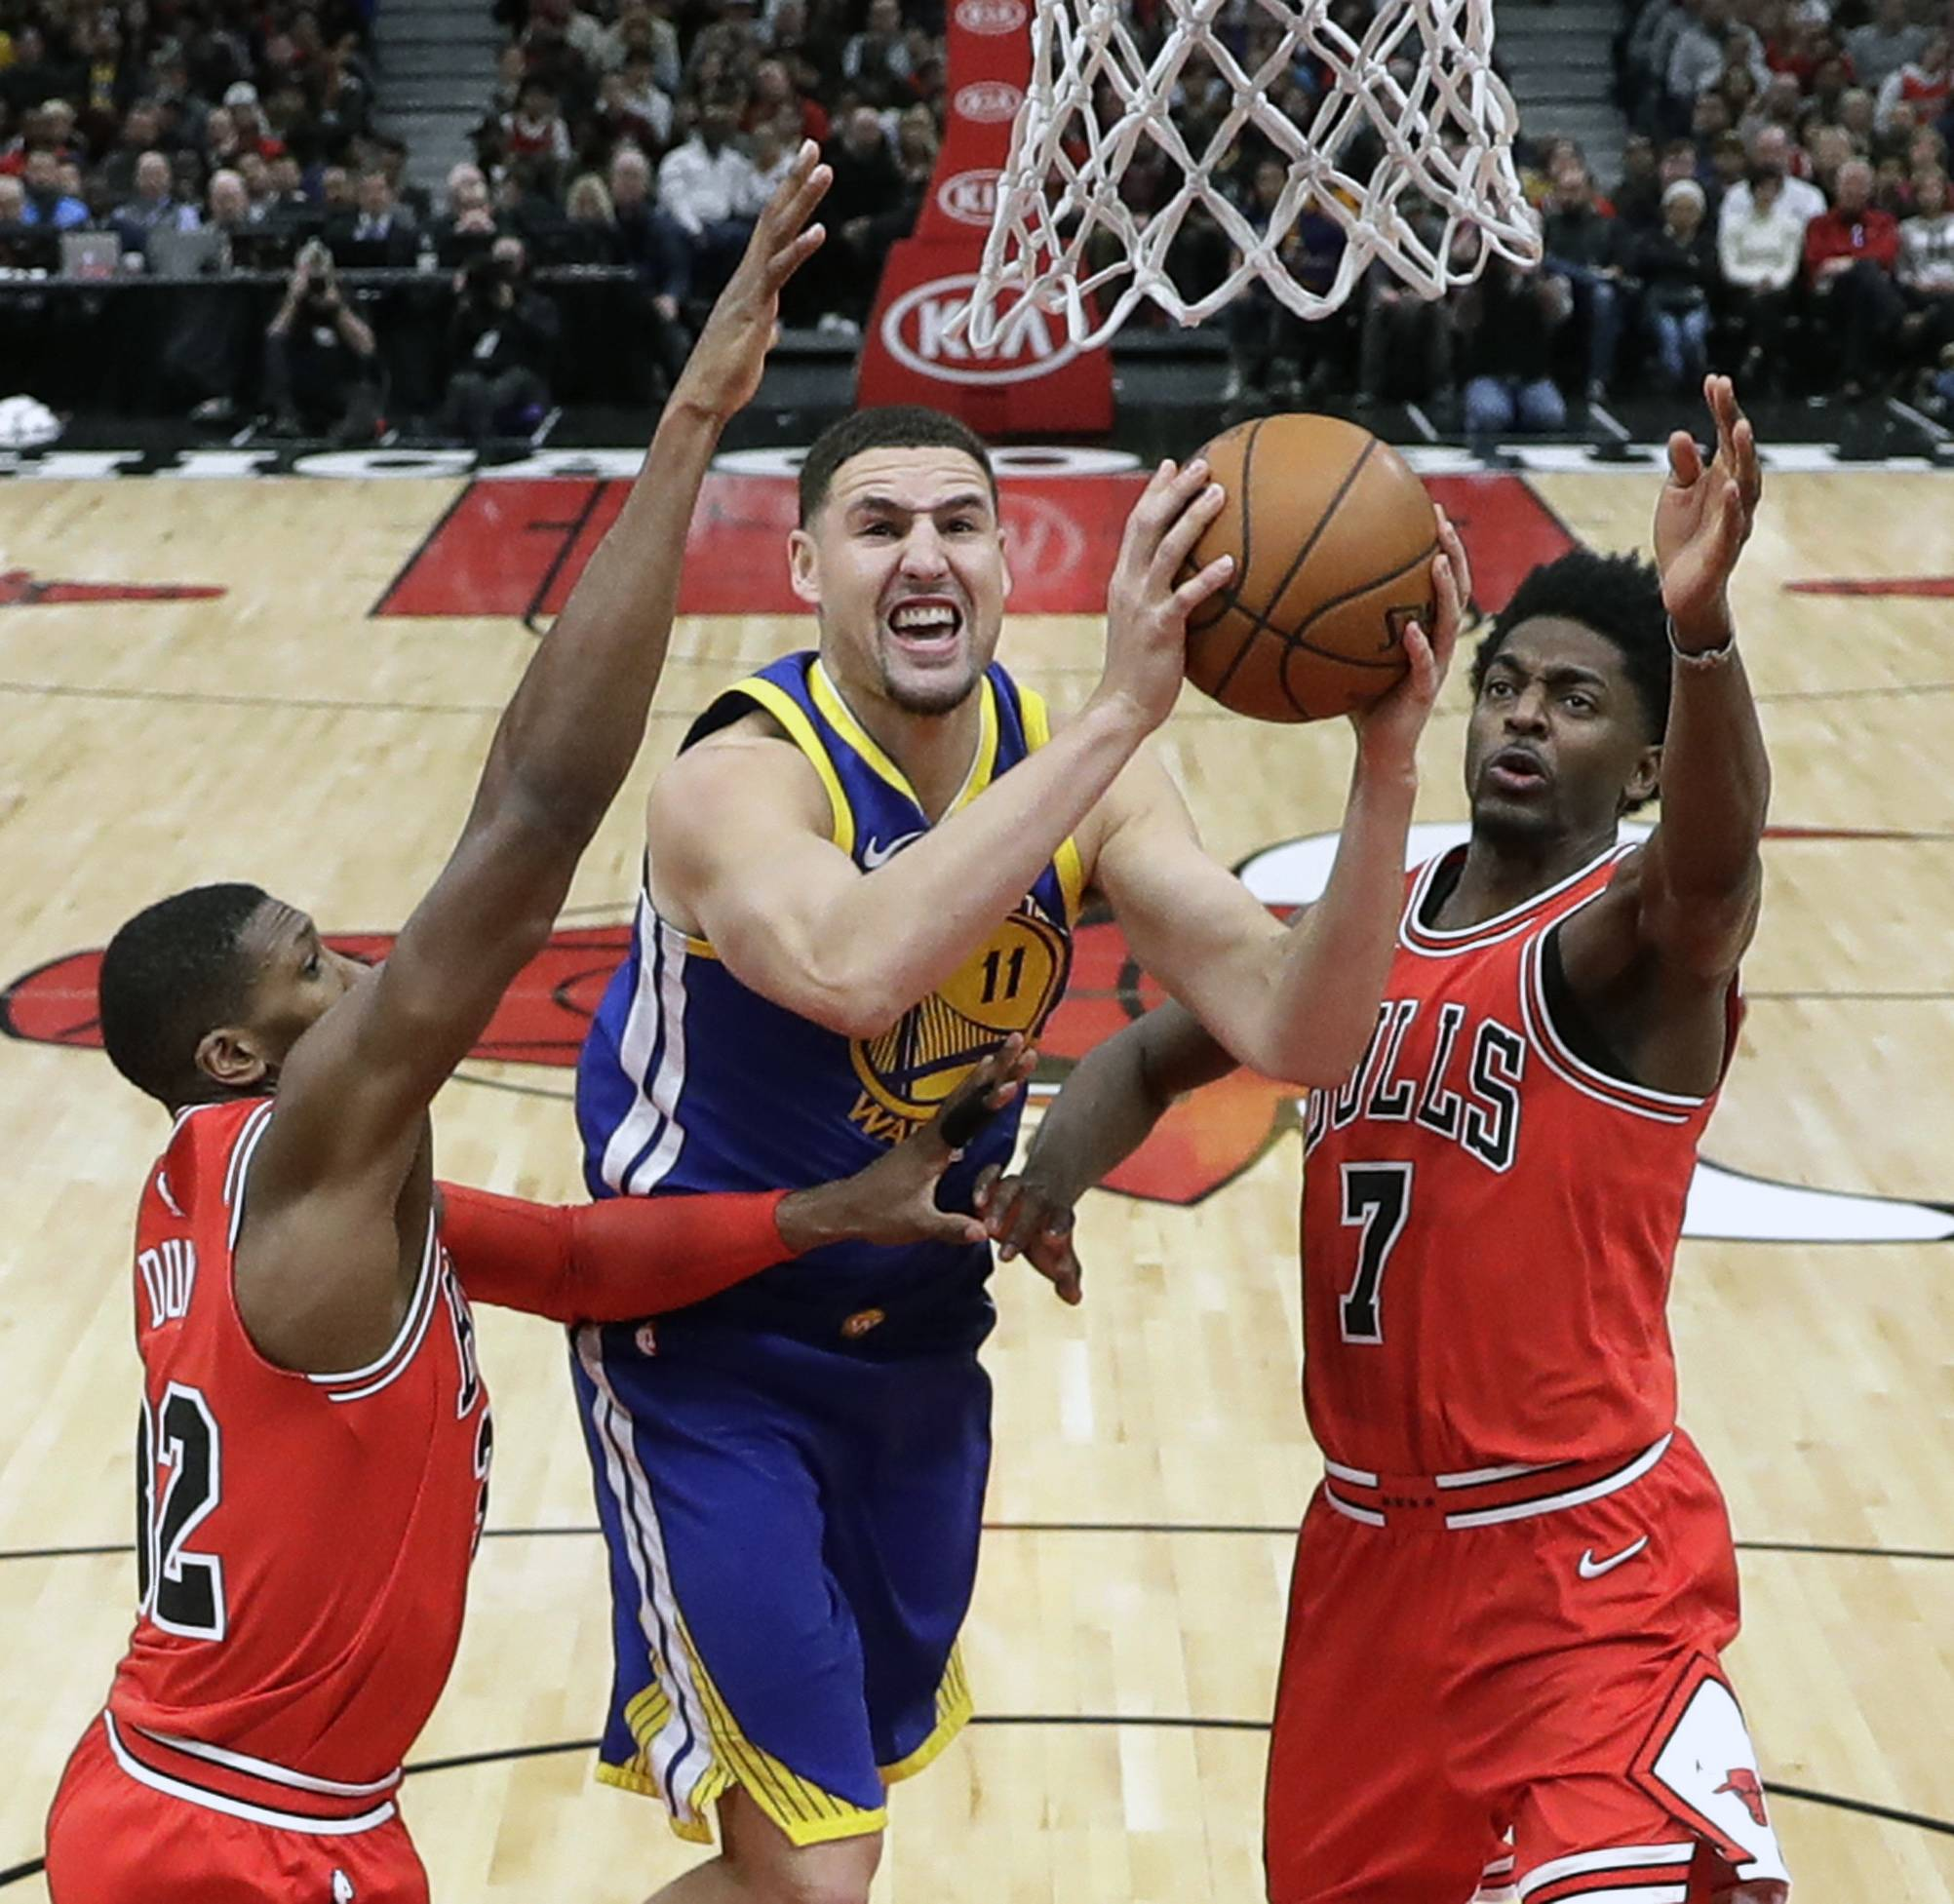 Golden State Warriors' Klay Thompson (11) shoots between Chicago Bulls' Kris Dunn (32) and Justin Holiday, right, during the second half of an NBA basketball game Wednesday, Jan. 17, 2018, in Chicago. The Warriors won 119-112.